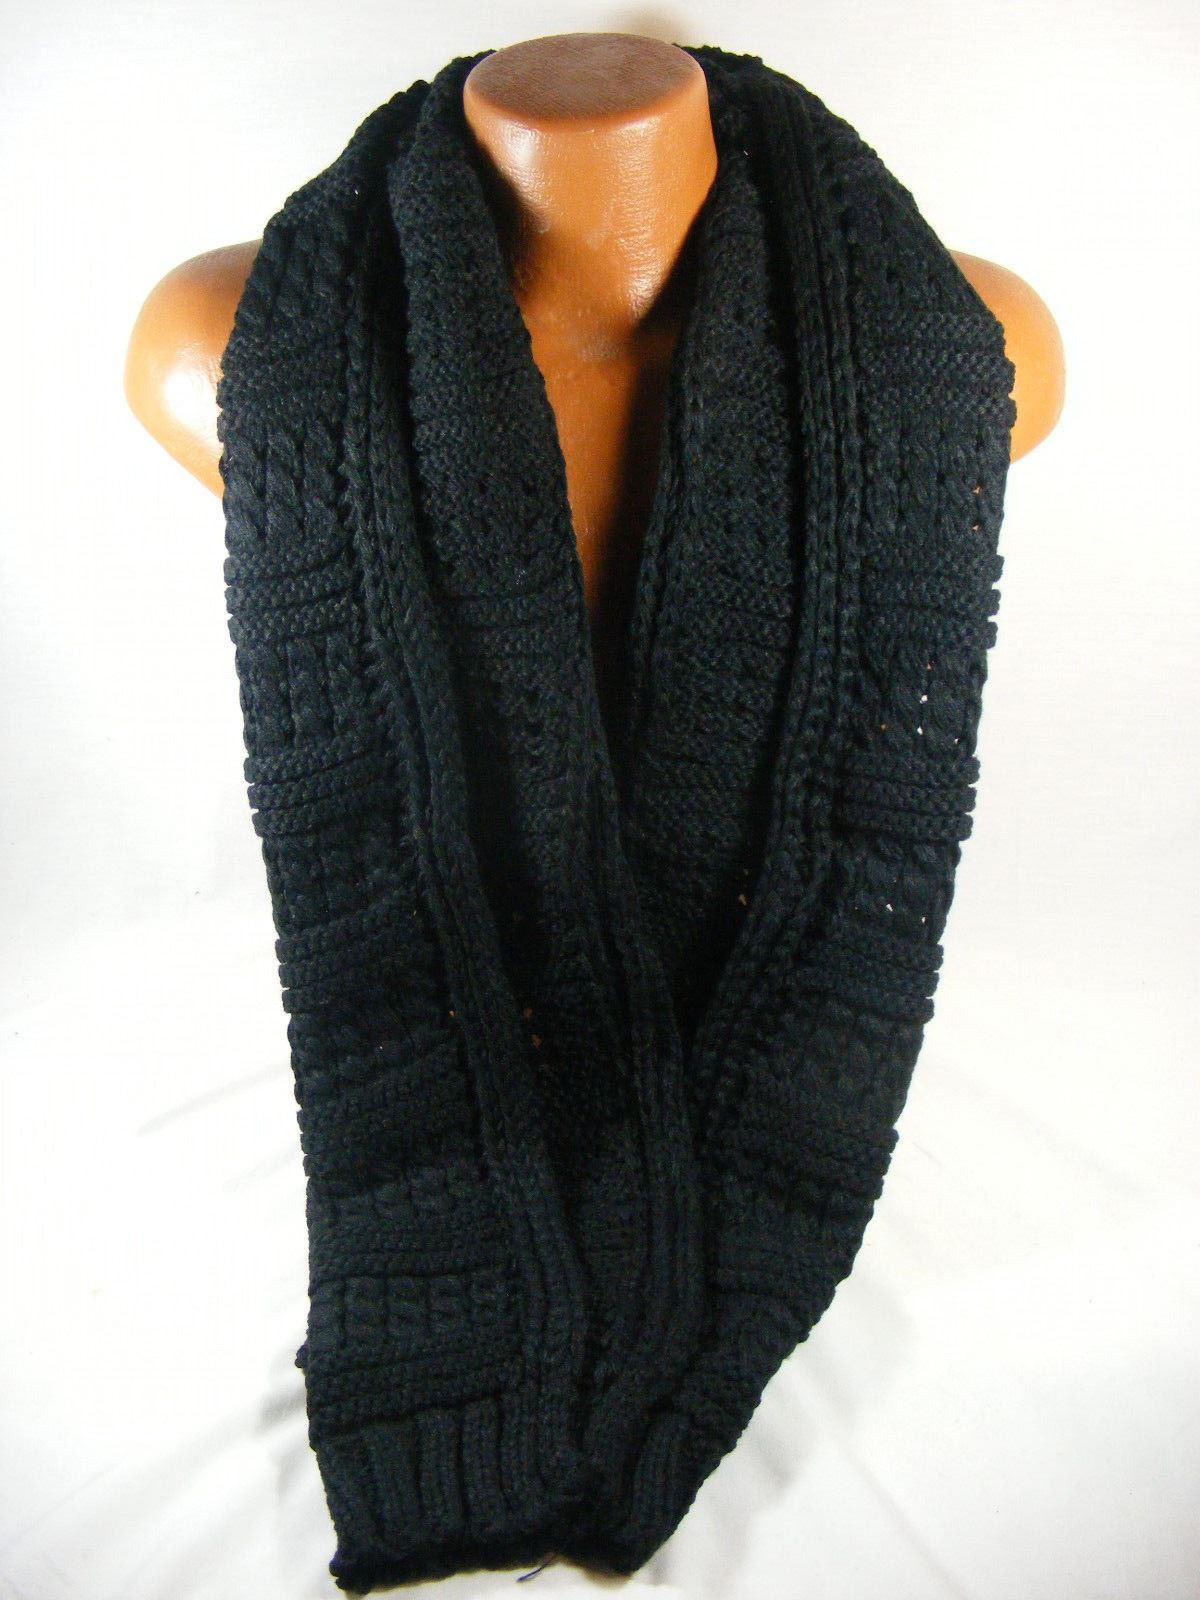 Handknit Cable Knit Muffler Scarf Oversized Soft